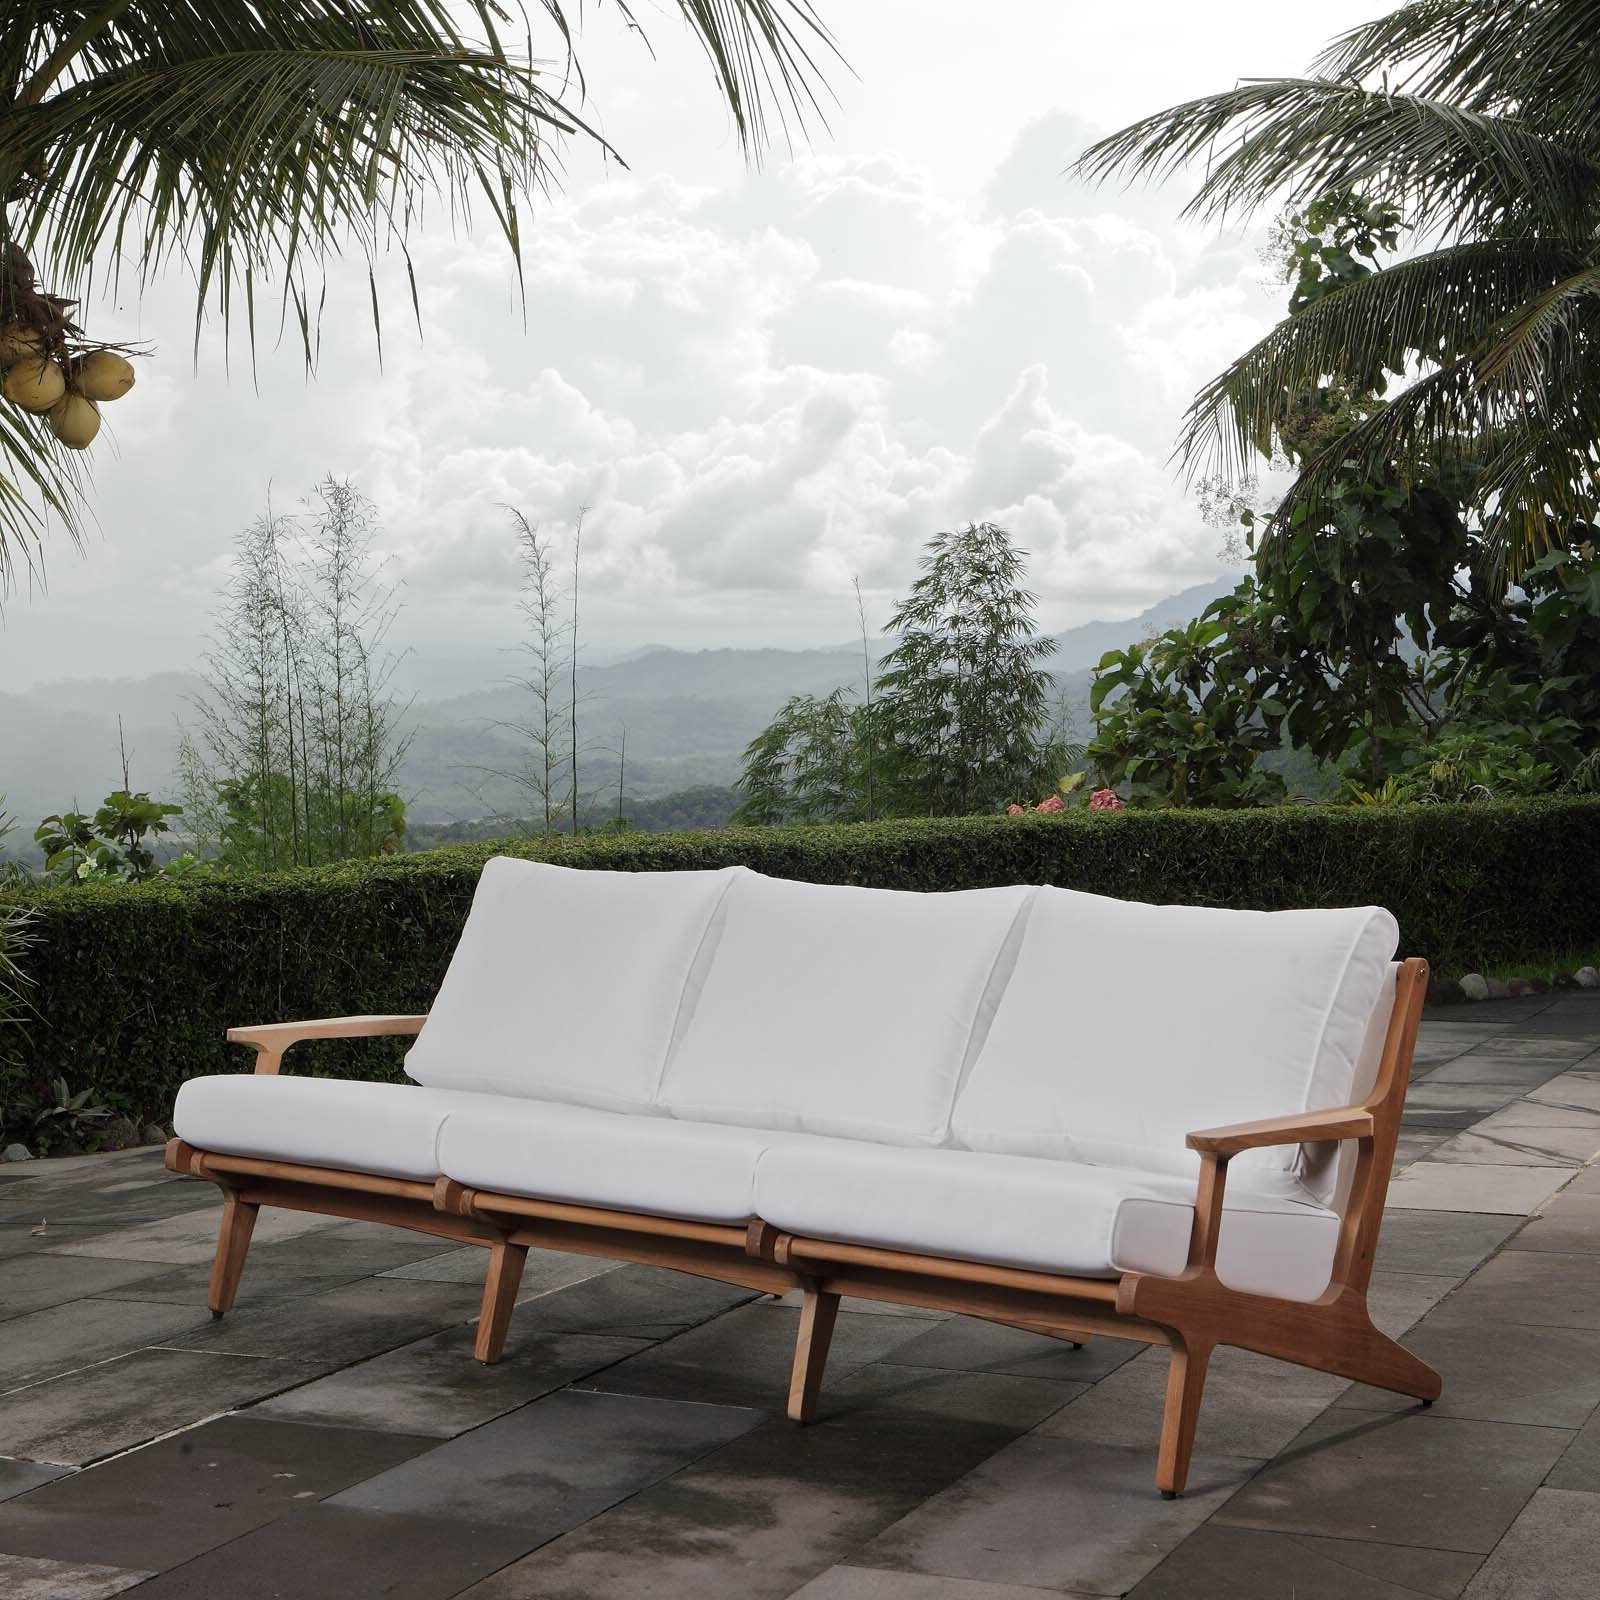 Berube Teak Patio Sofa With Cushions Regarding Trendy O'kean Teak Patio Sofas With Cushions (Gallery 3 of 25)